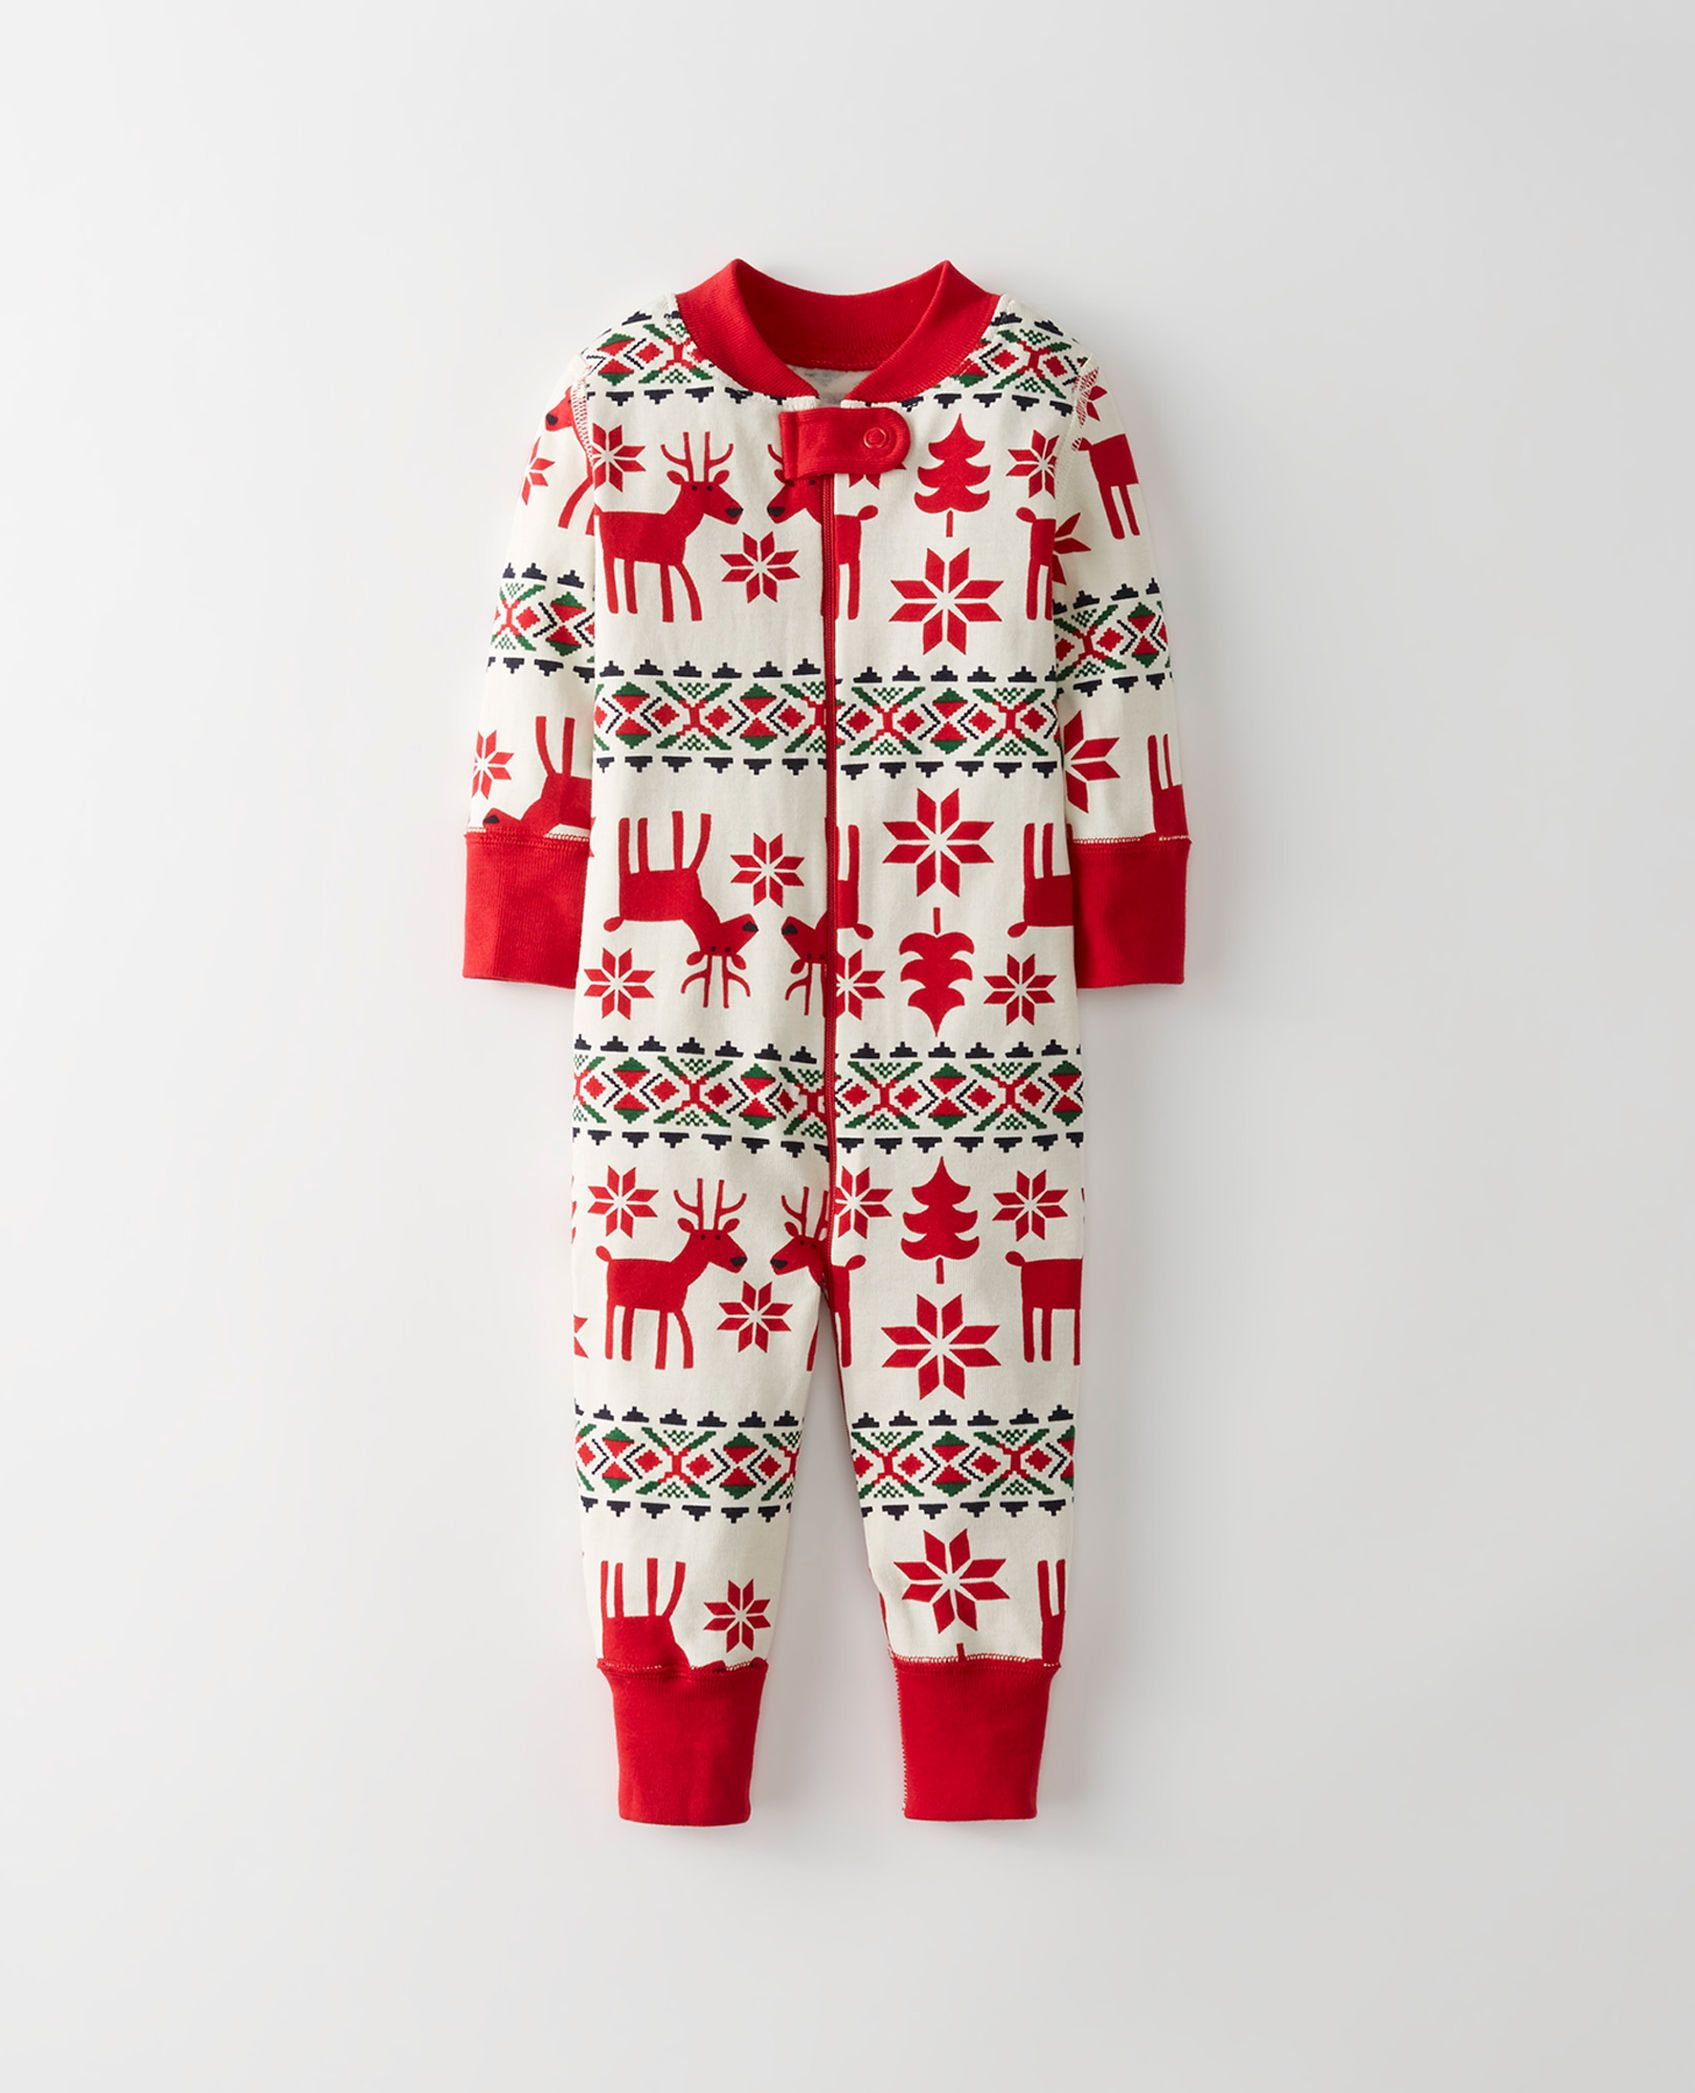 Baby's First Christmas Gift Ideas | Organic cotton, Babies and ...